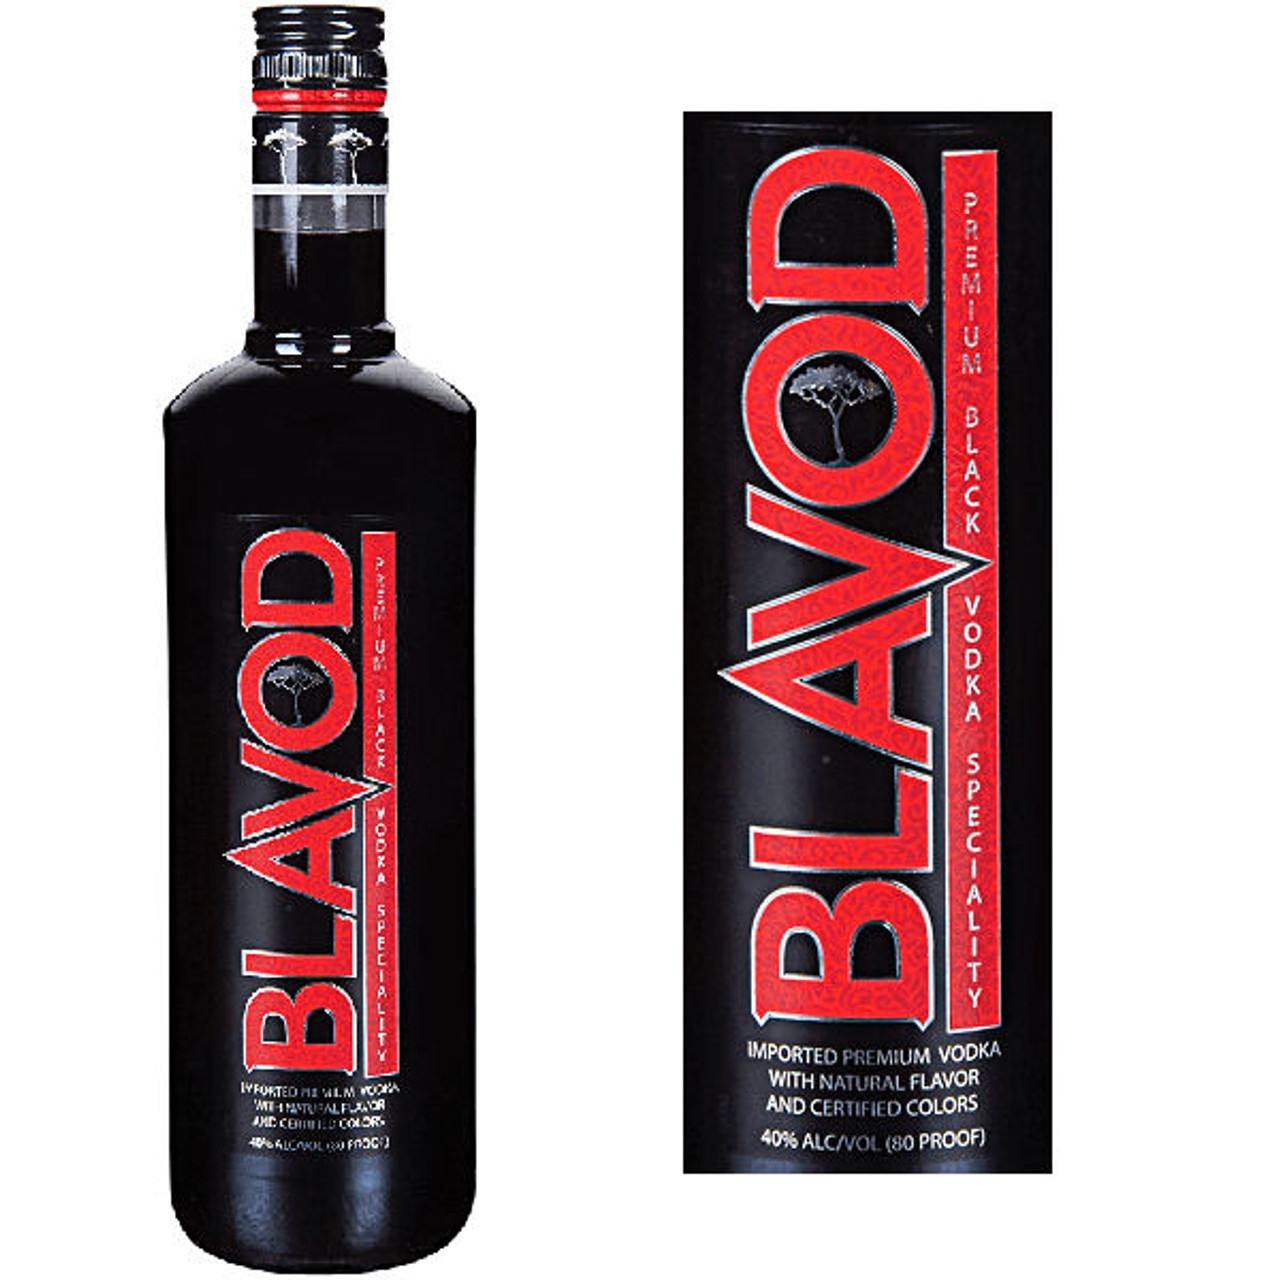 Blavod Premium Black Vodka 750ml